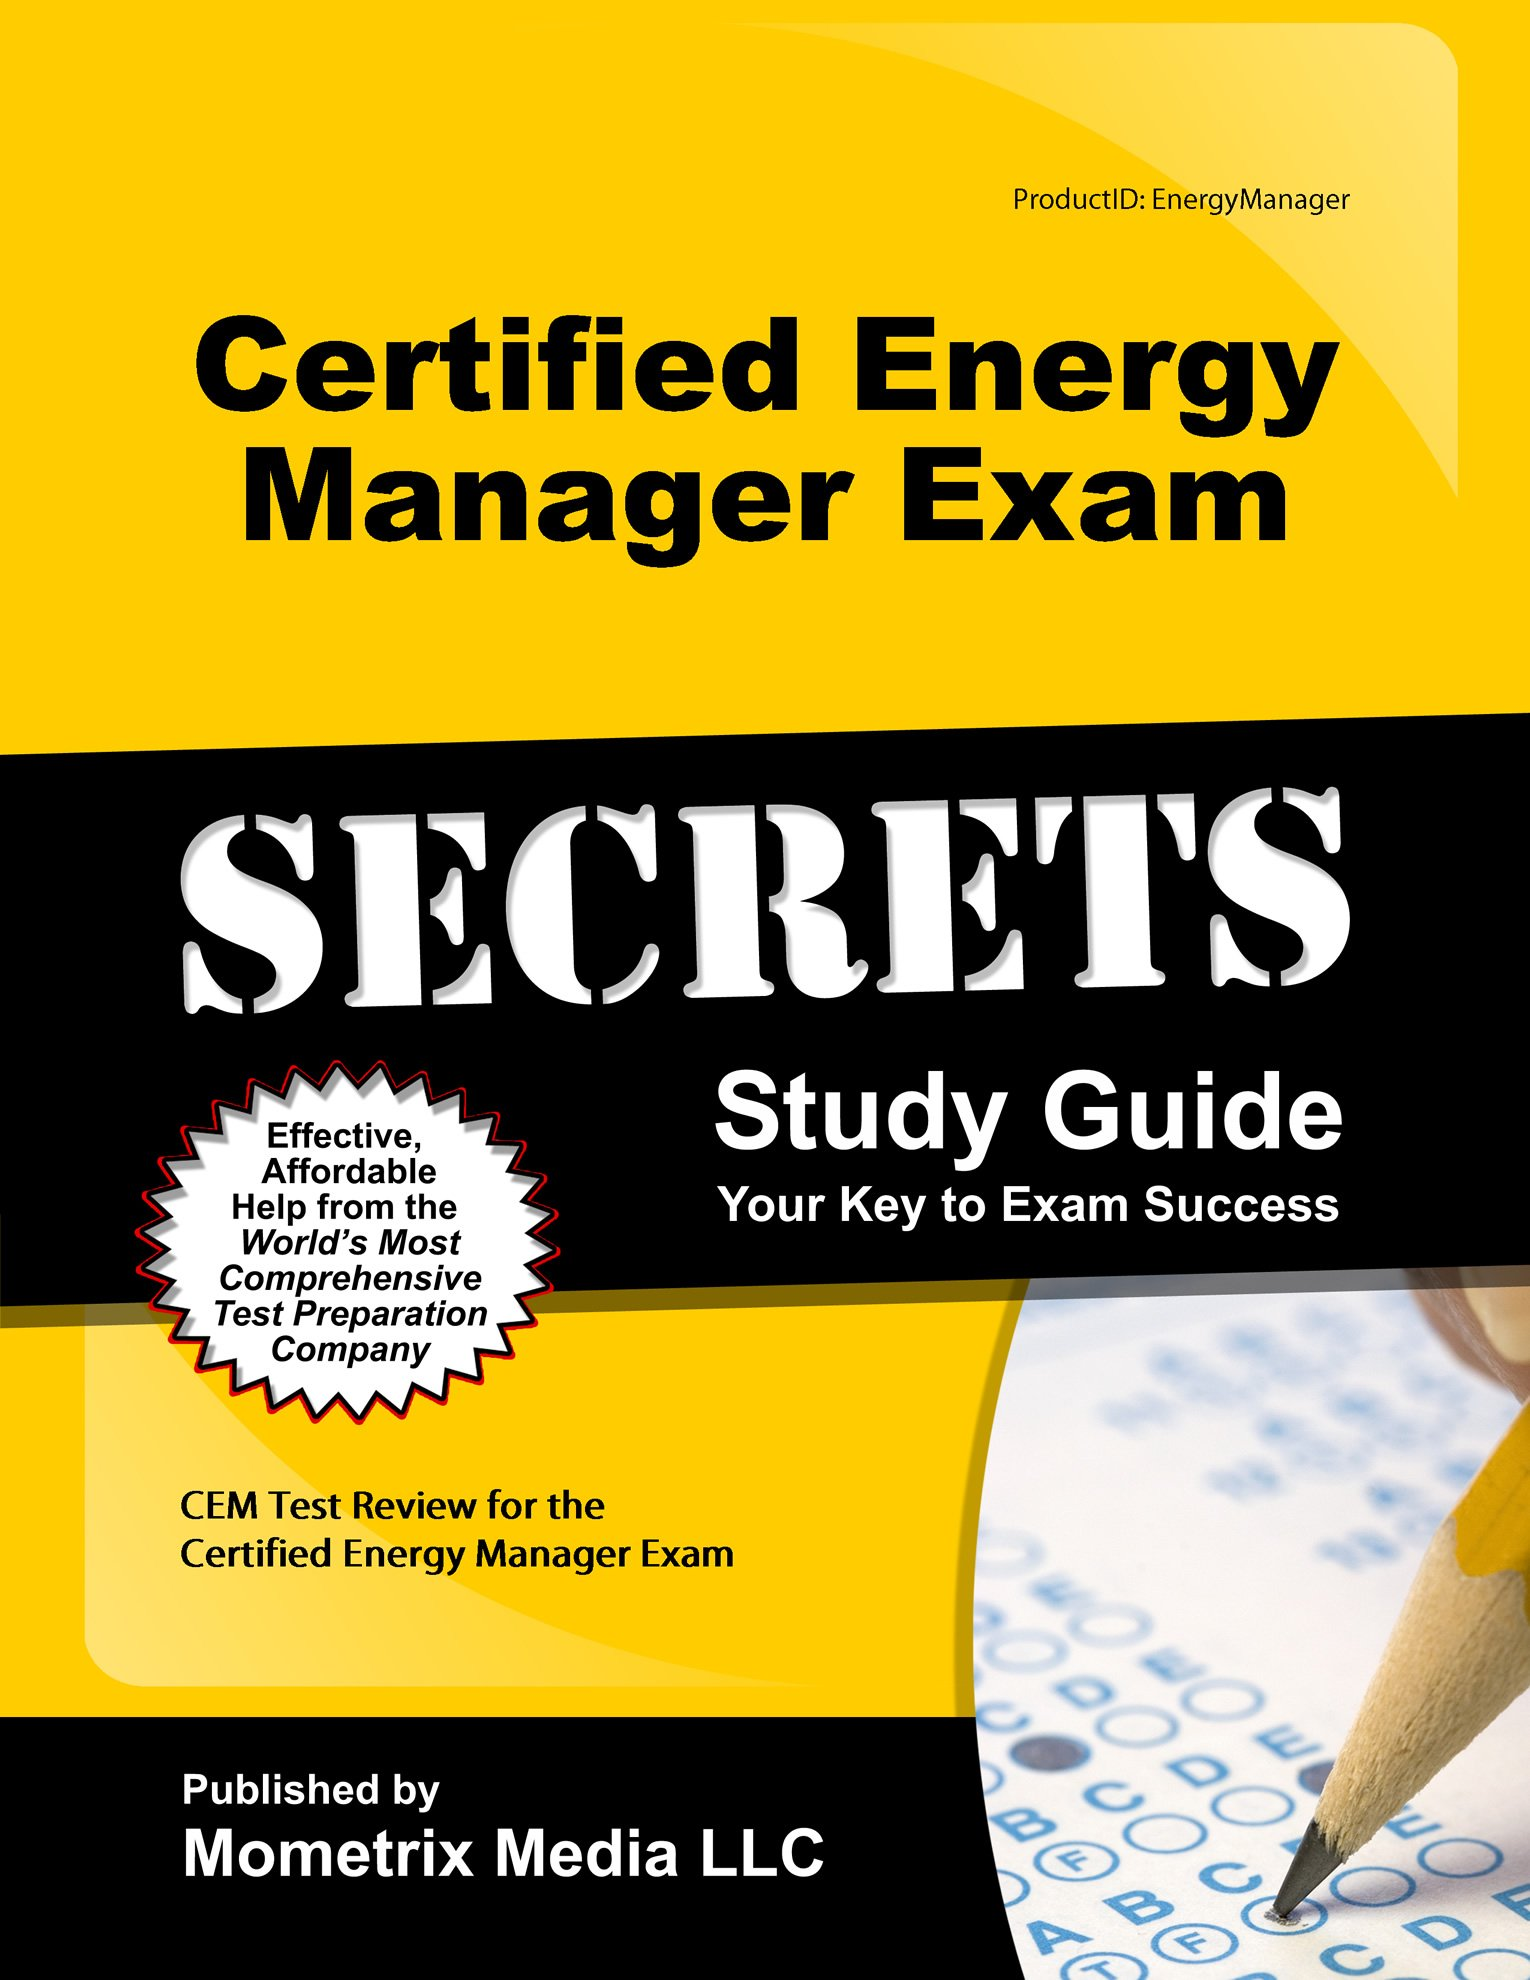 Amazon Buy Certified Energy Manager Exam Secrets Study Guide